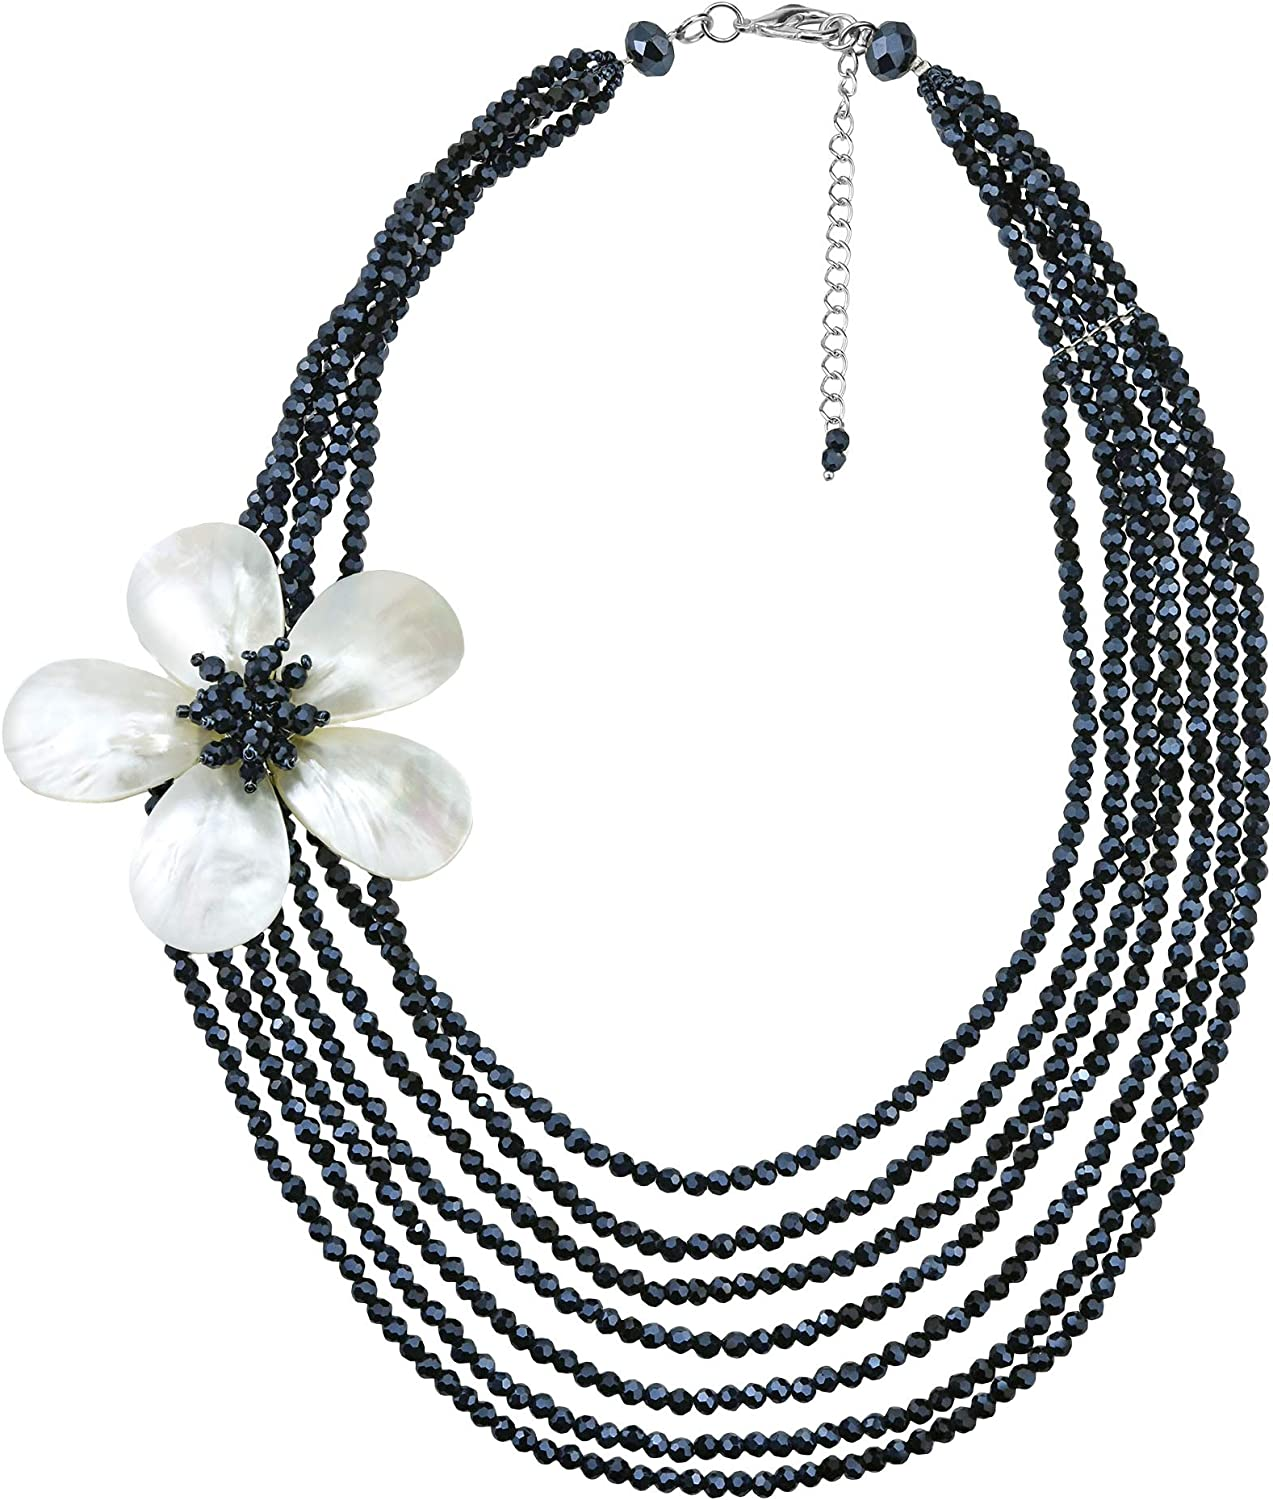 AeraVida Black and White Multi-Strand Crystal and White Mother of Pearl Floral Necklace